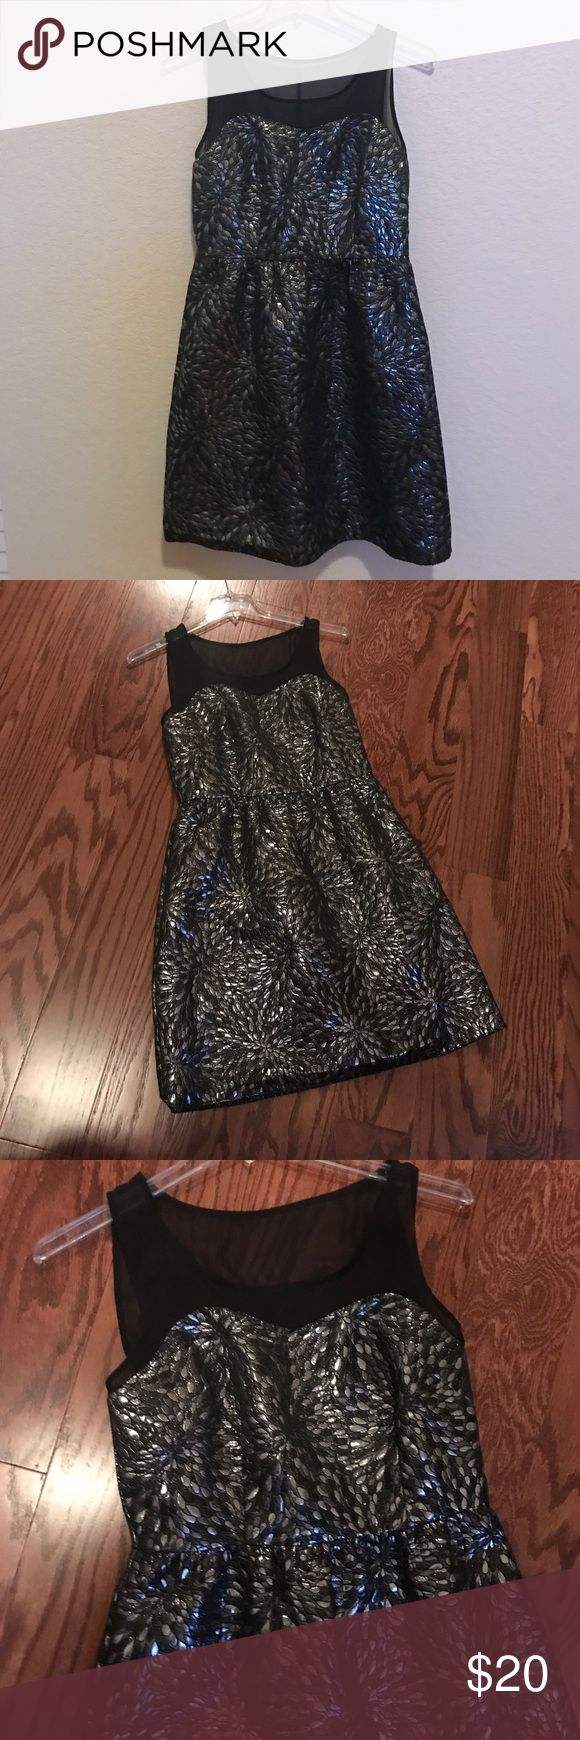 Elle black and silver dress! Metallic & beautiful Gorgeous party dress in black and silvetr metallic bus sheer topped gorgeous . worn once in like new  condition no damage no stains no rips' no snags zipper back light weight Elle Dresses